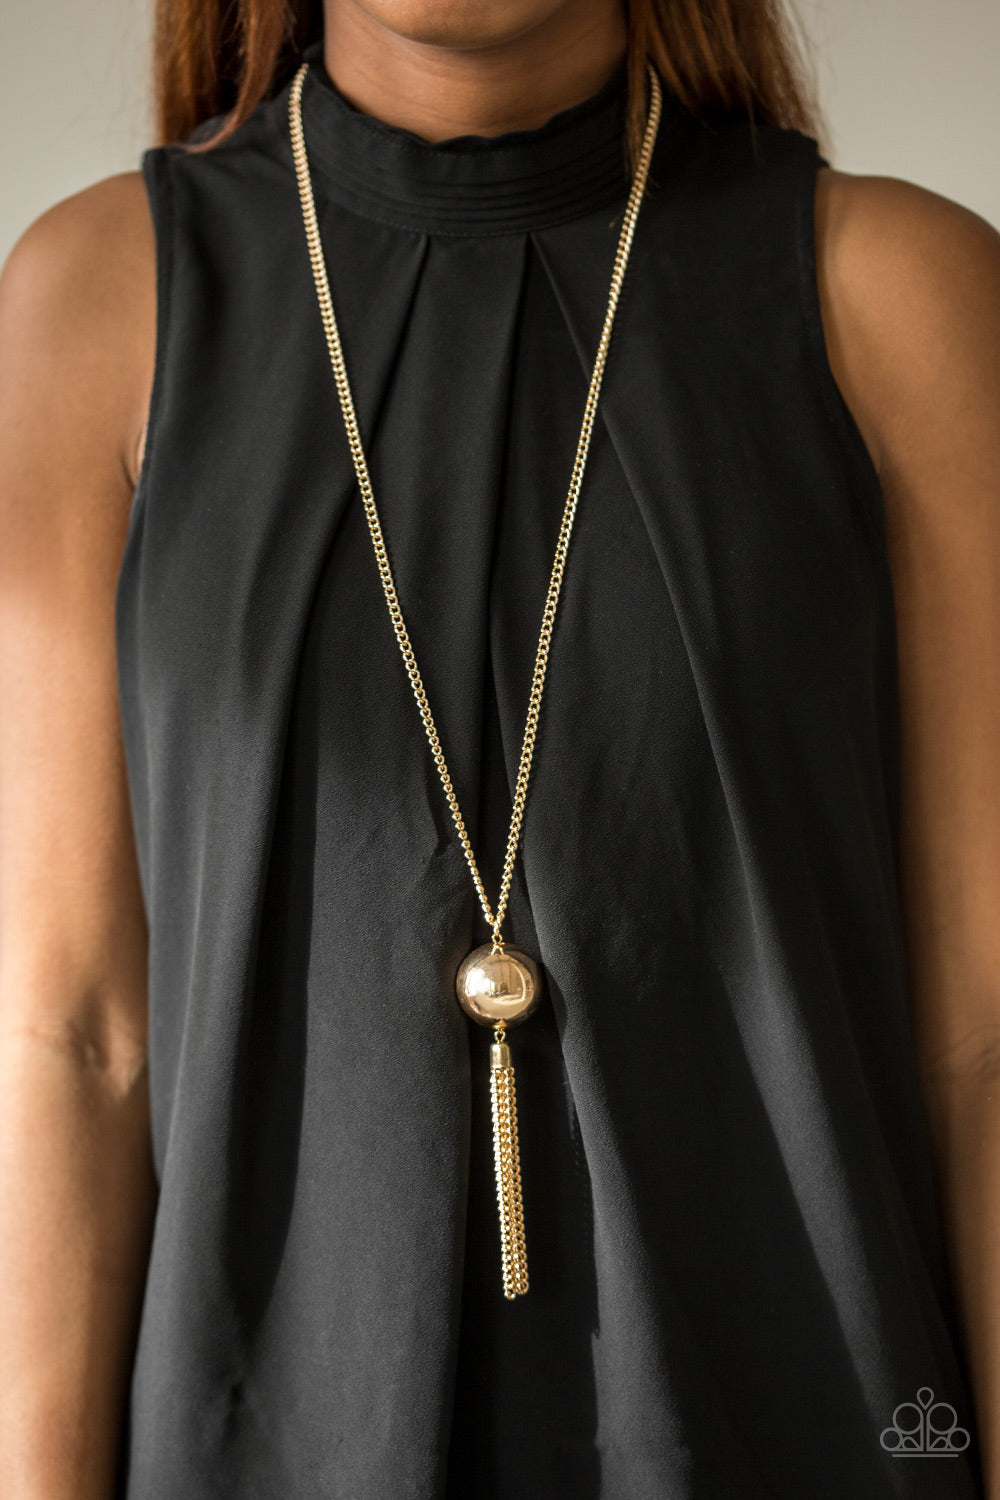 Big Baller - gold - Paparazzi necklace